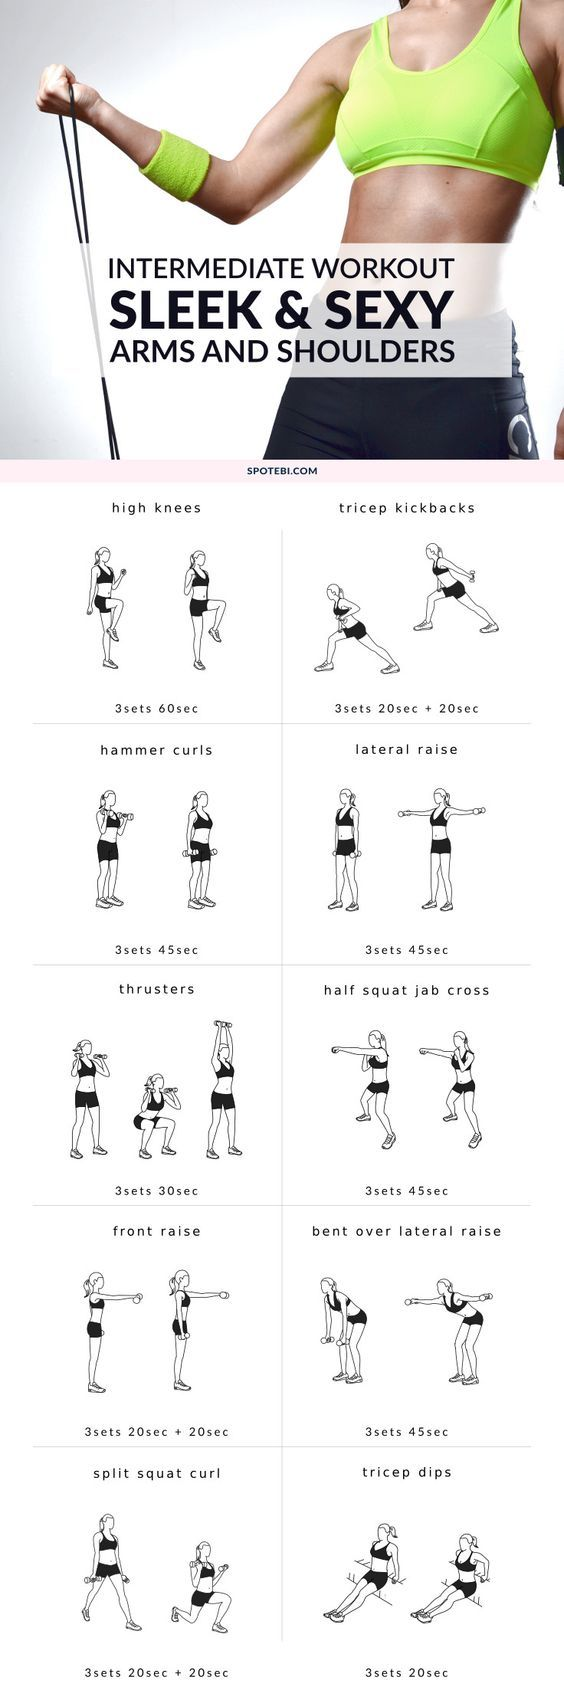 Get sleek arms and sexy shoulders with this dumbbell workout routine for women. A set of 10 upper body exercises perfect for strengthening…